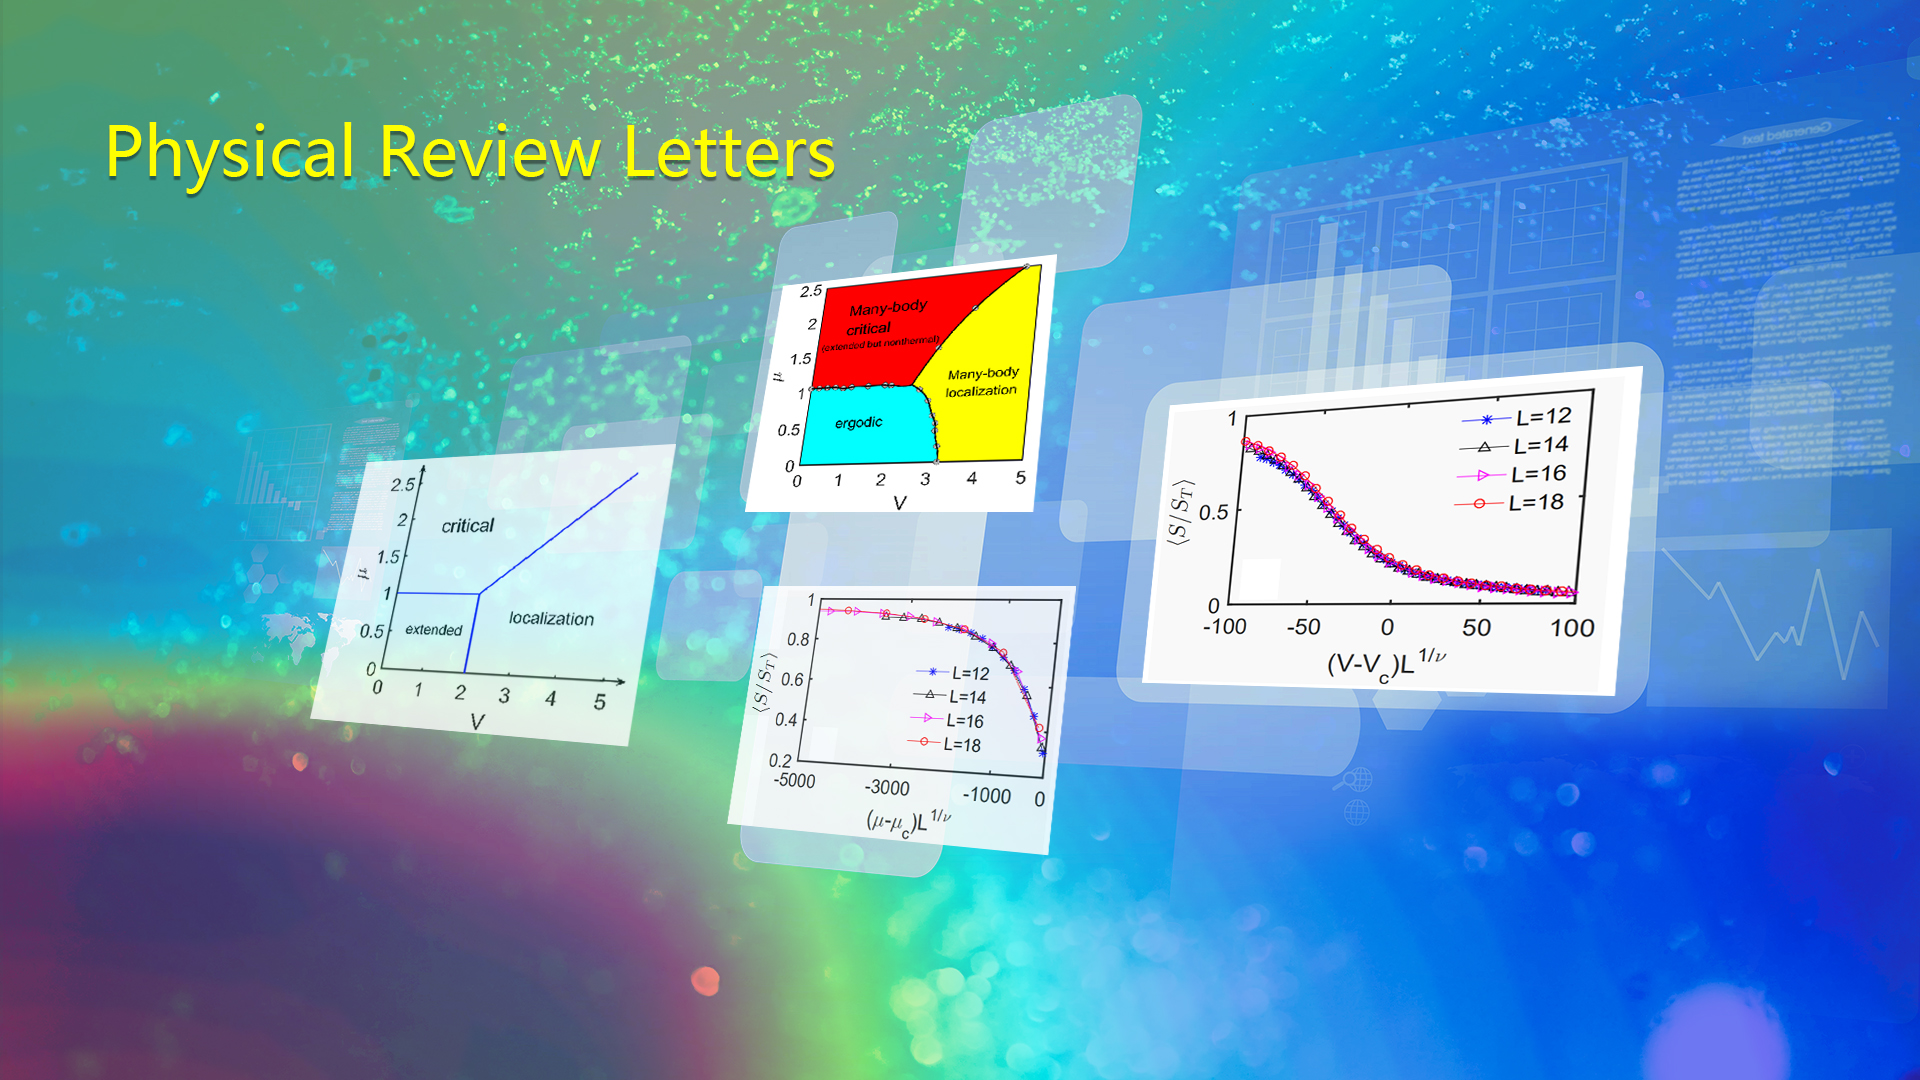 SUSTech researchers predict nonthermal many-body critical phase